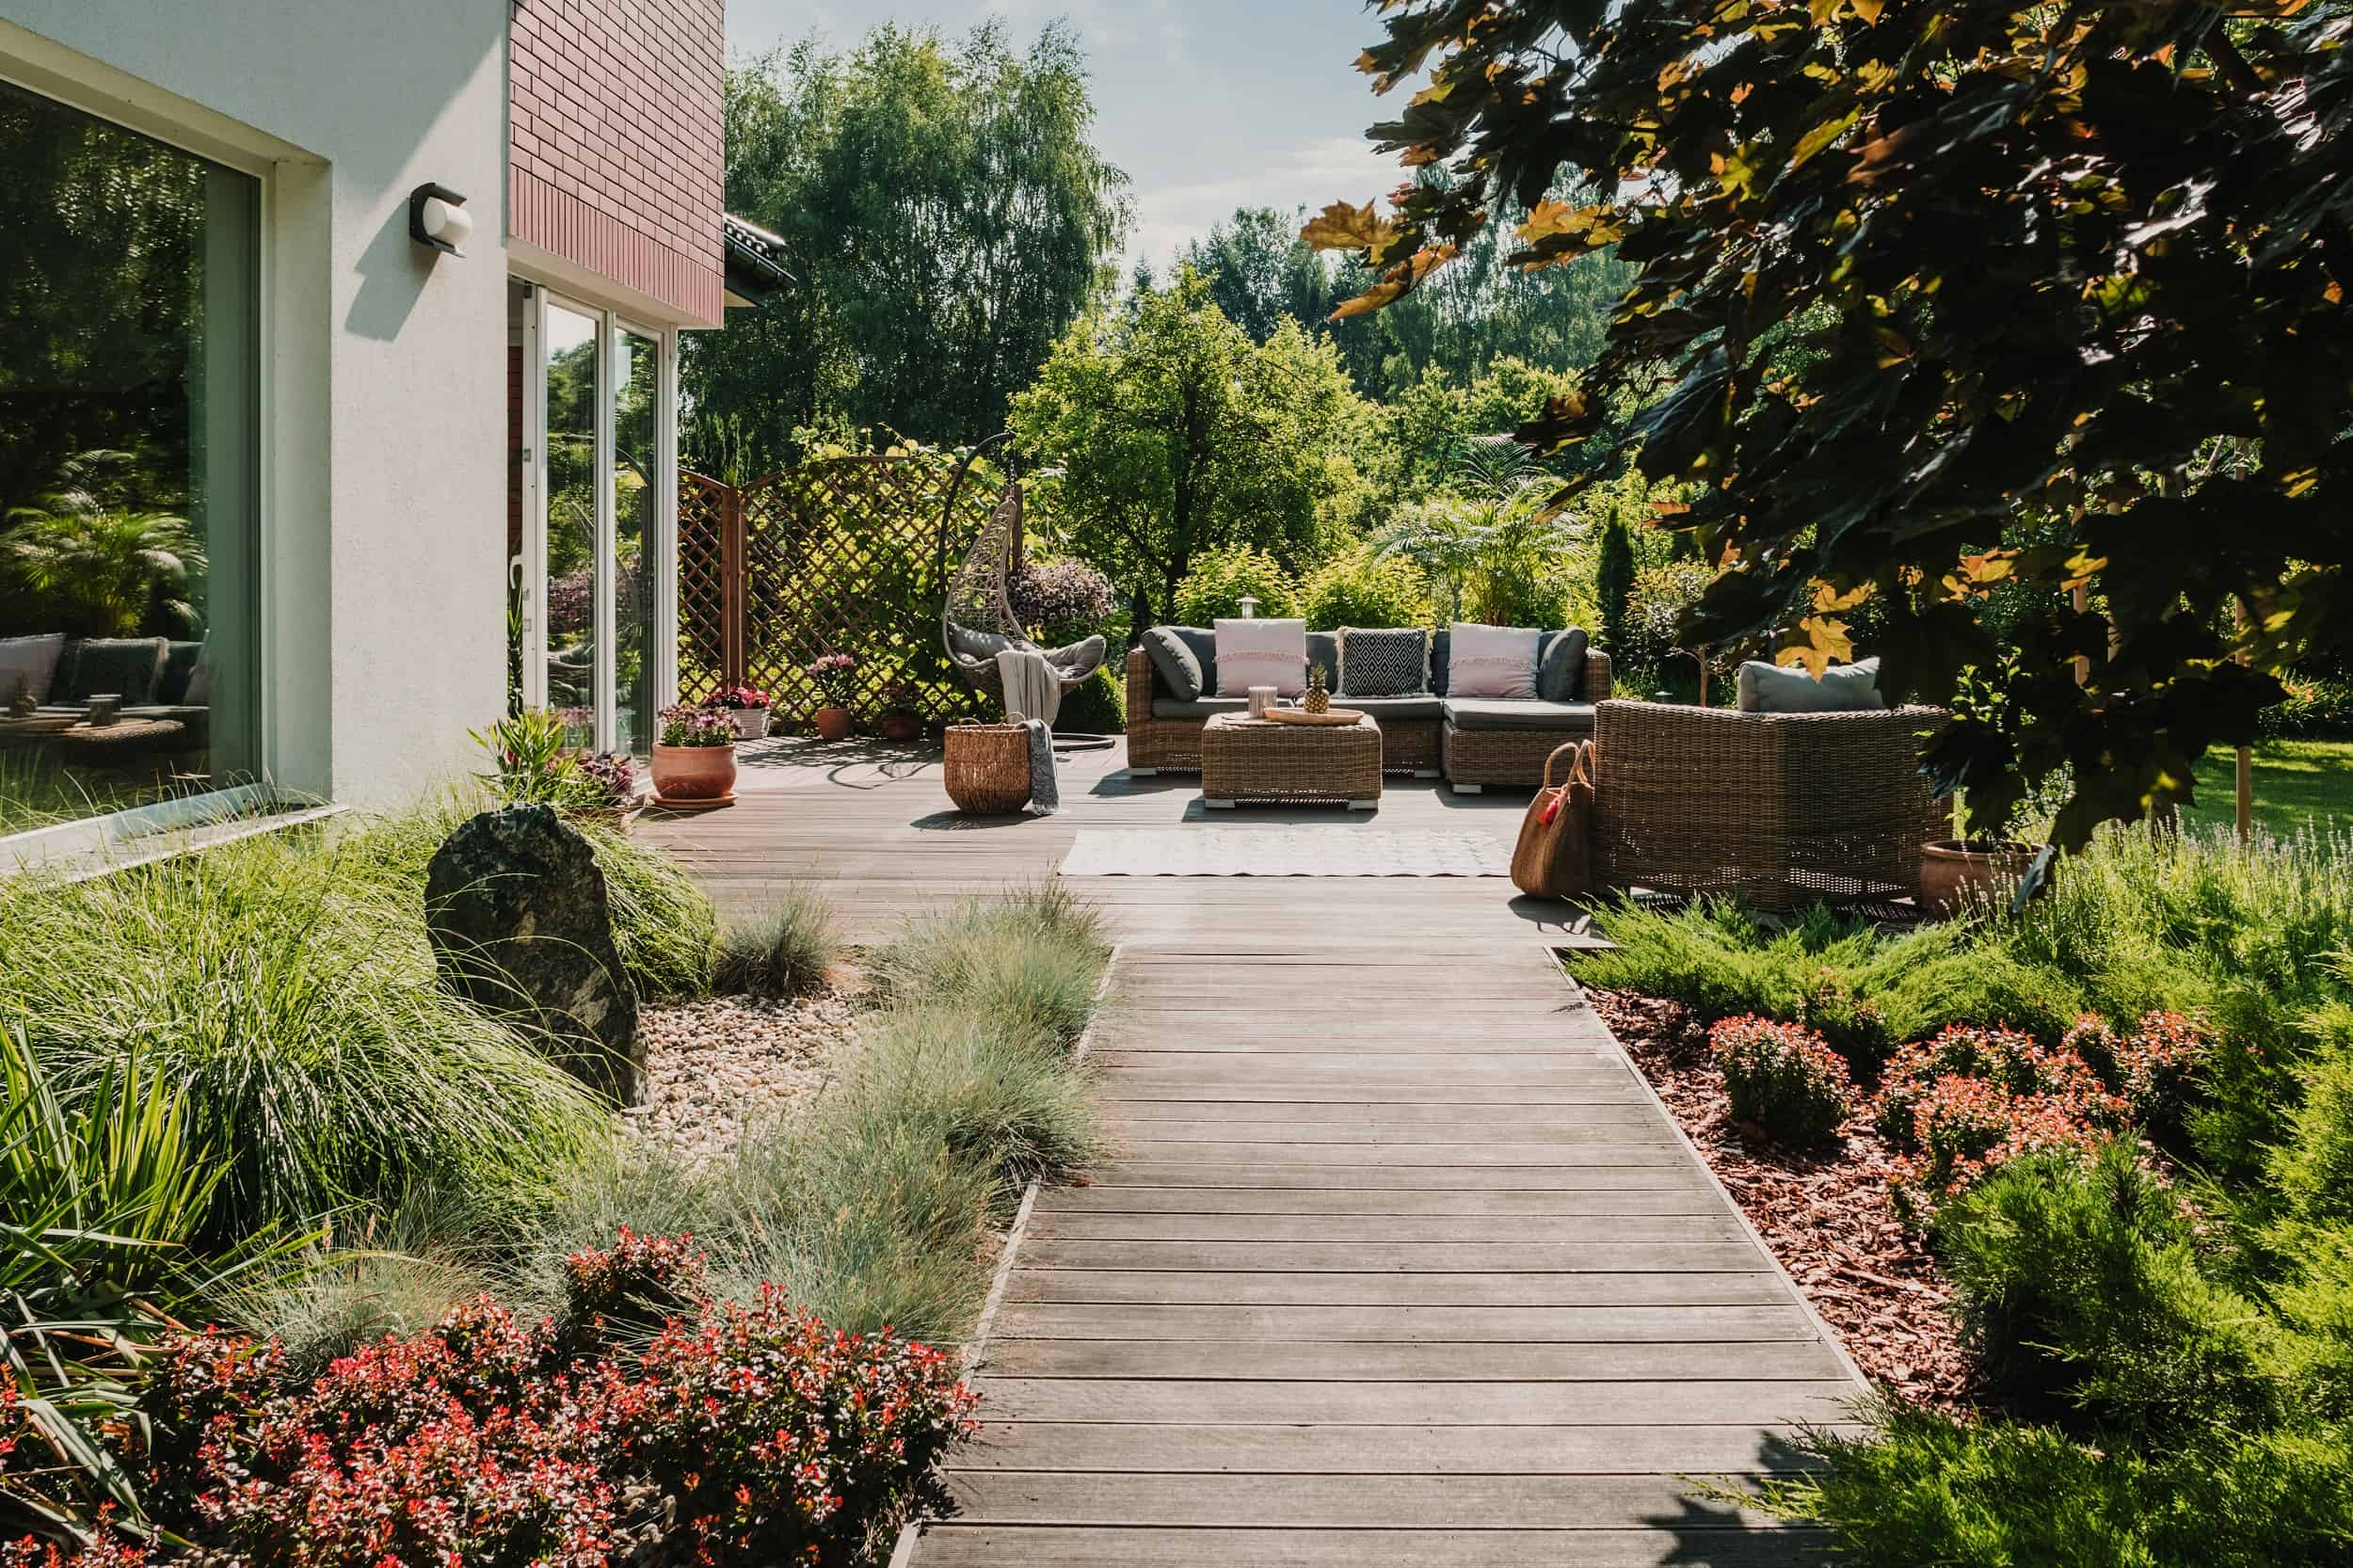 wooden path to terrace in the garden with trendy g 5HMD3RJ resize